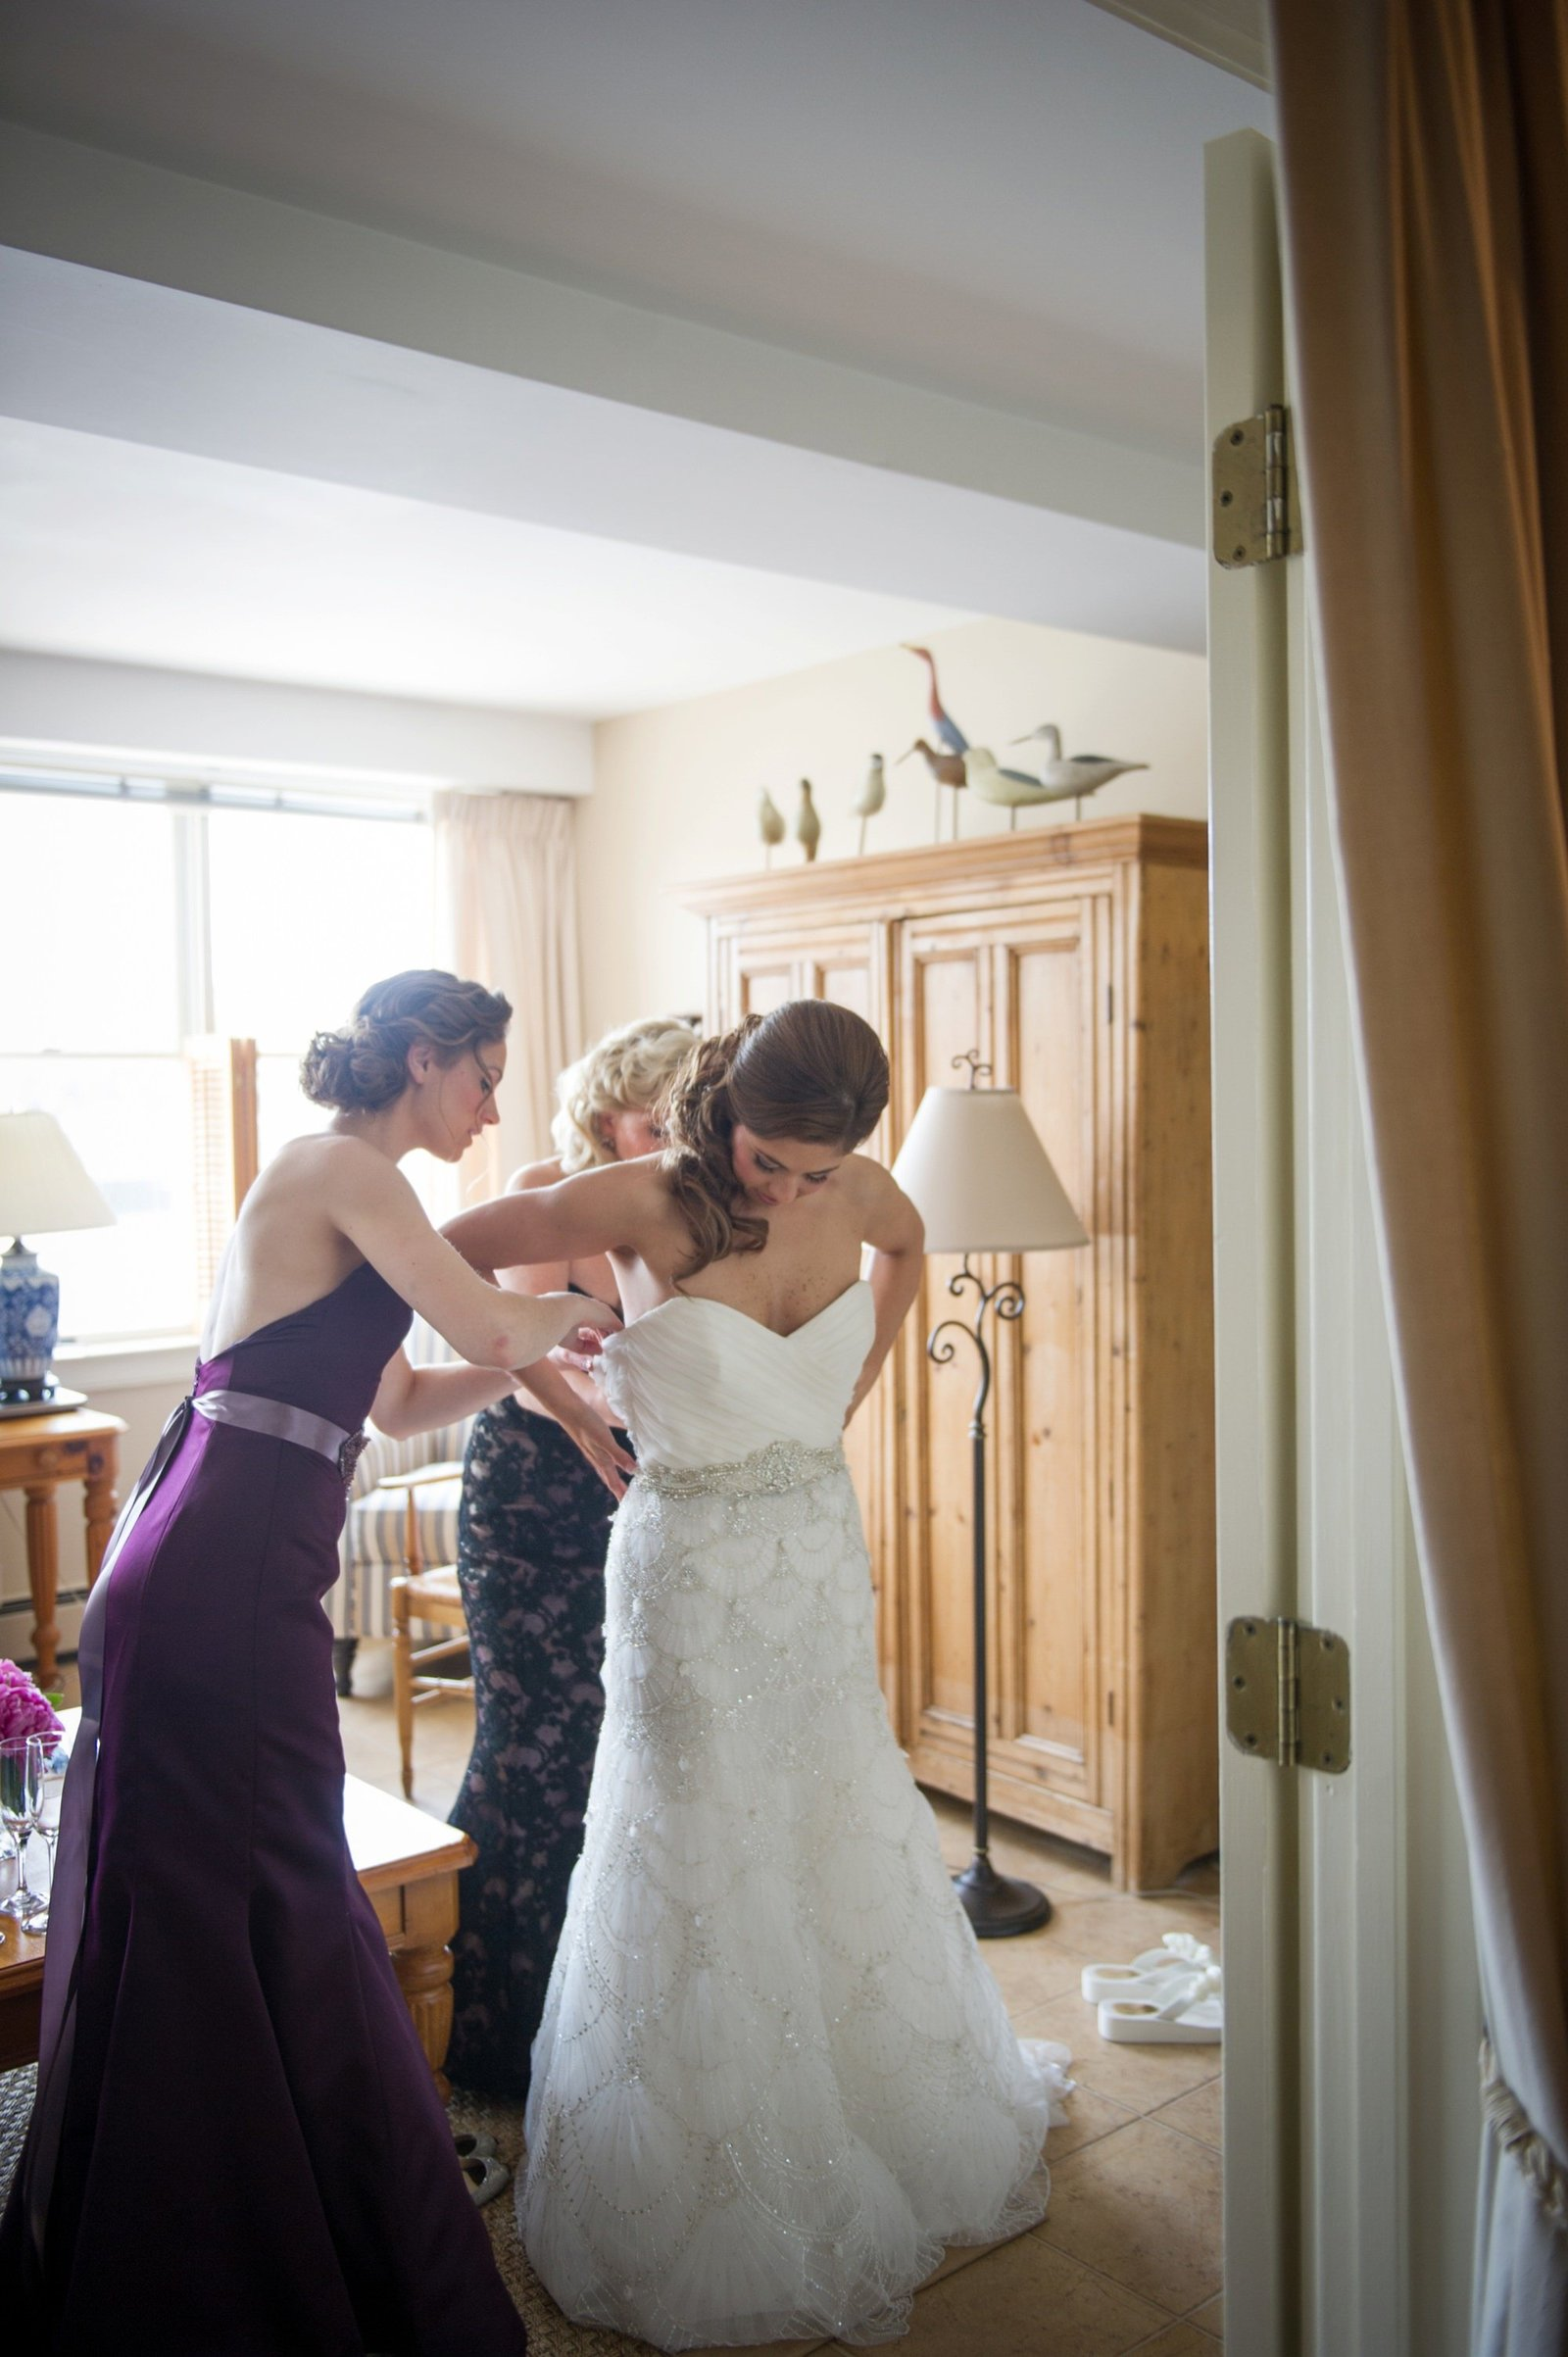 Bride getting ready details at The Branford House in Groton, CT